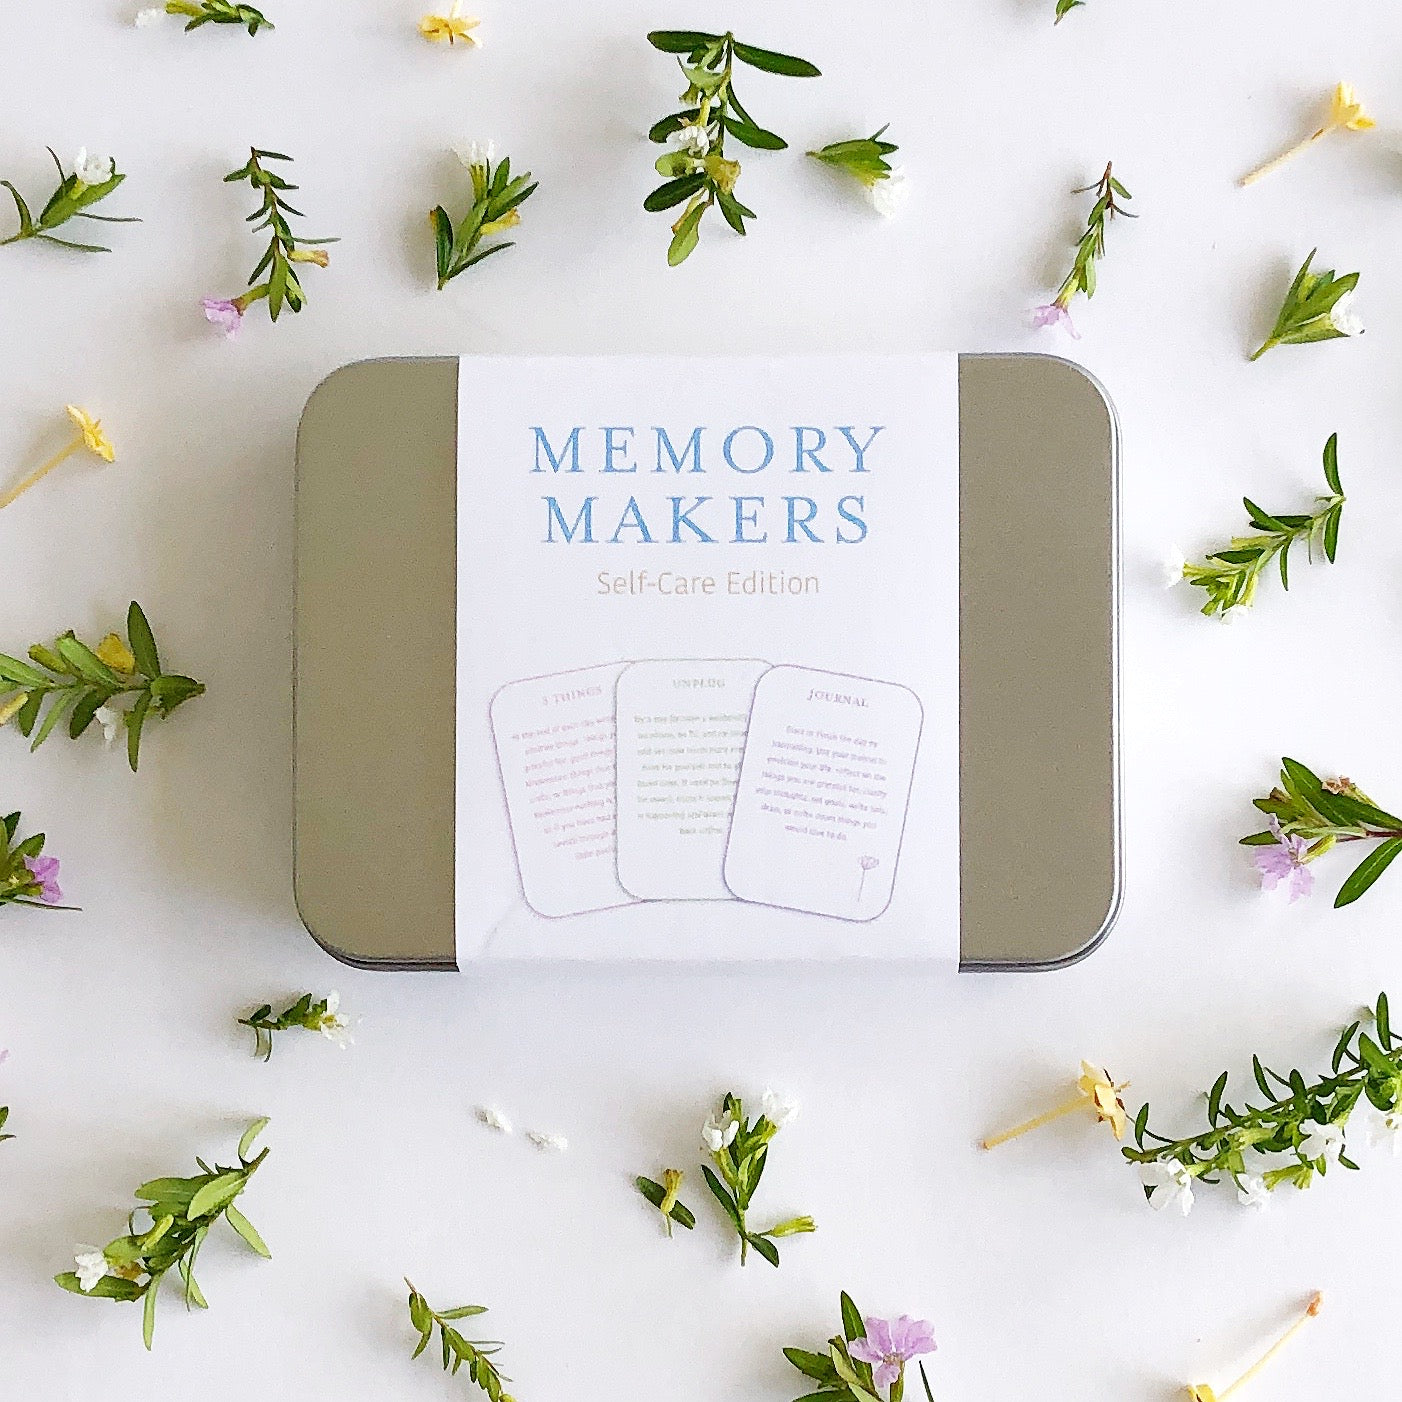 Memory Makers Self-Care Edition - 55 cards in an aluminium tin surrounded by tiny flowers